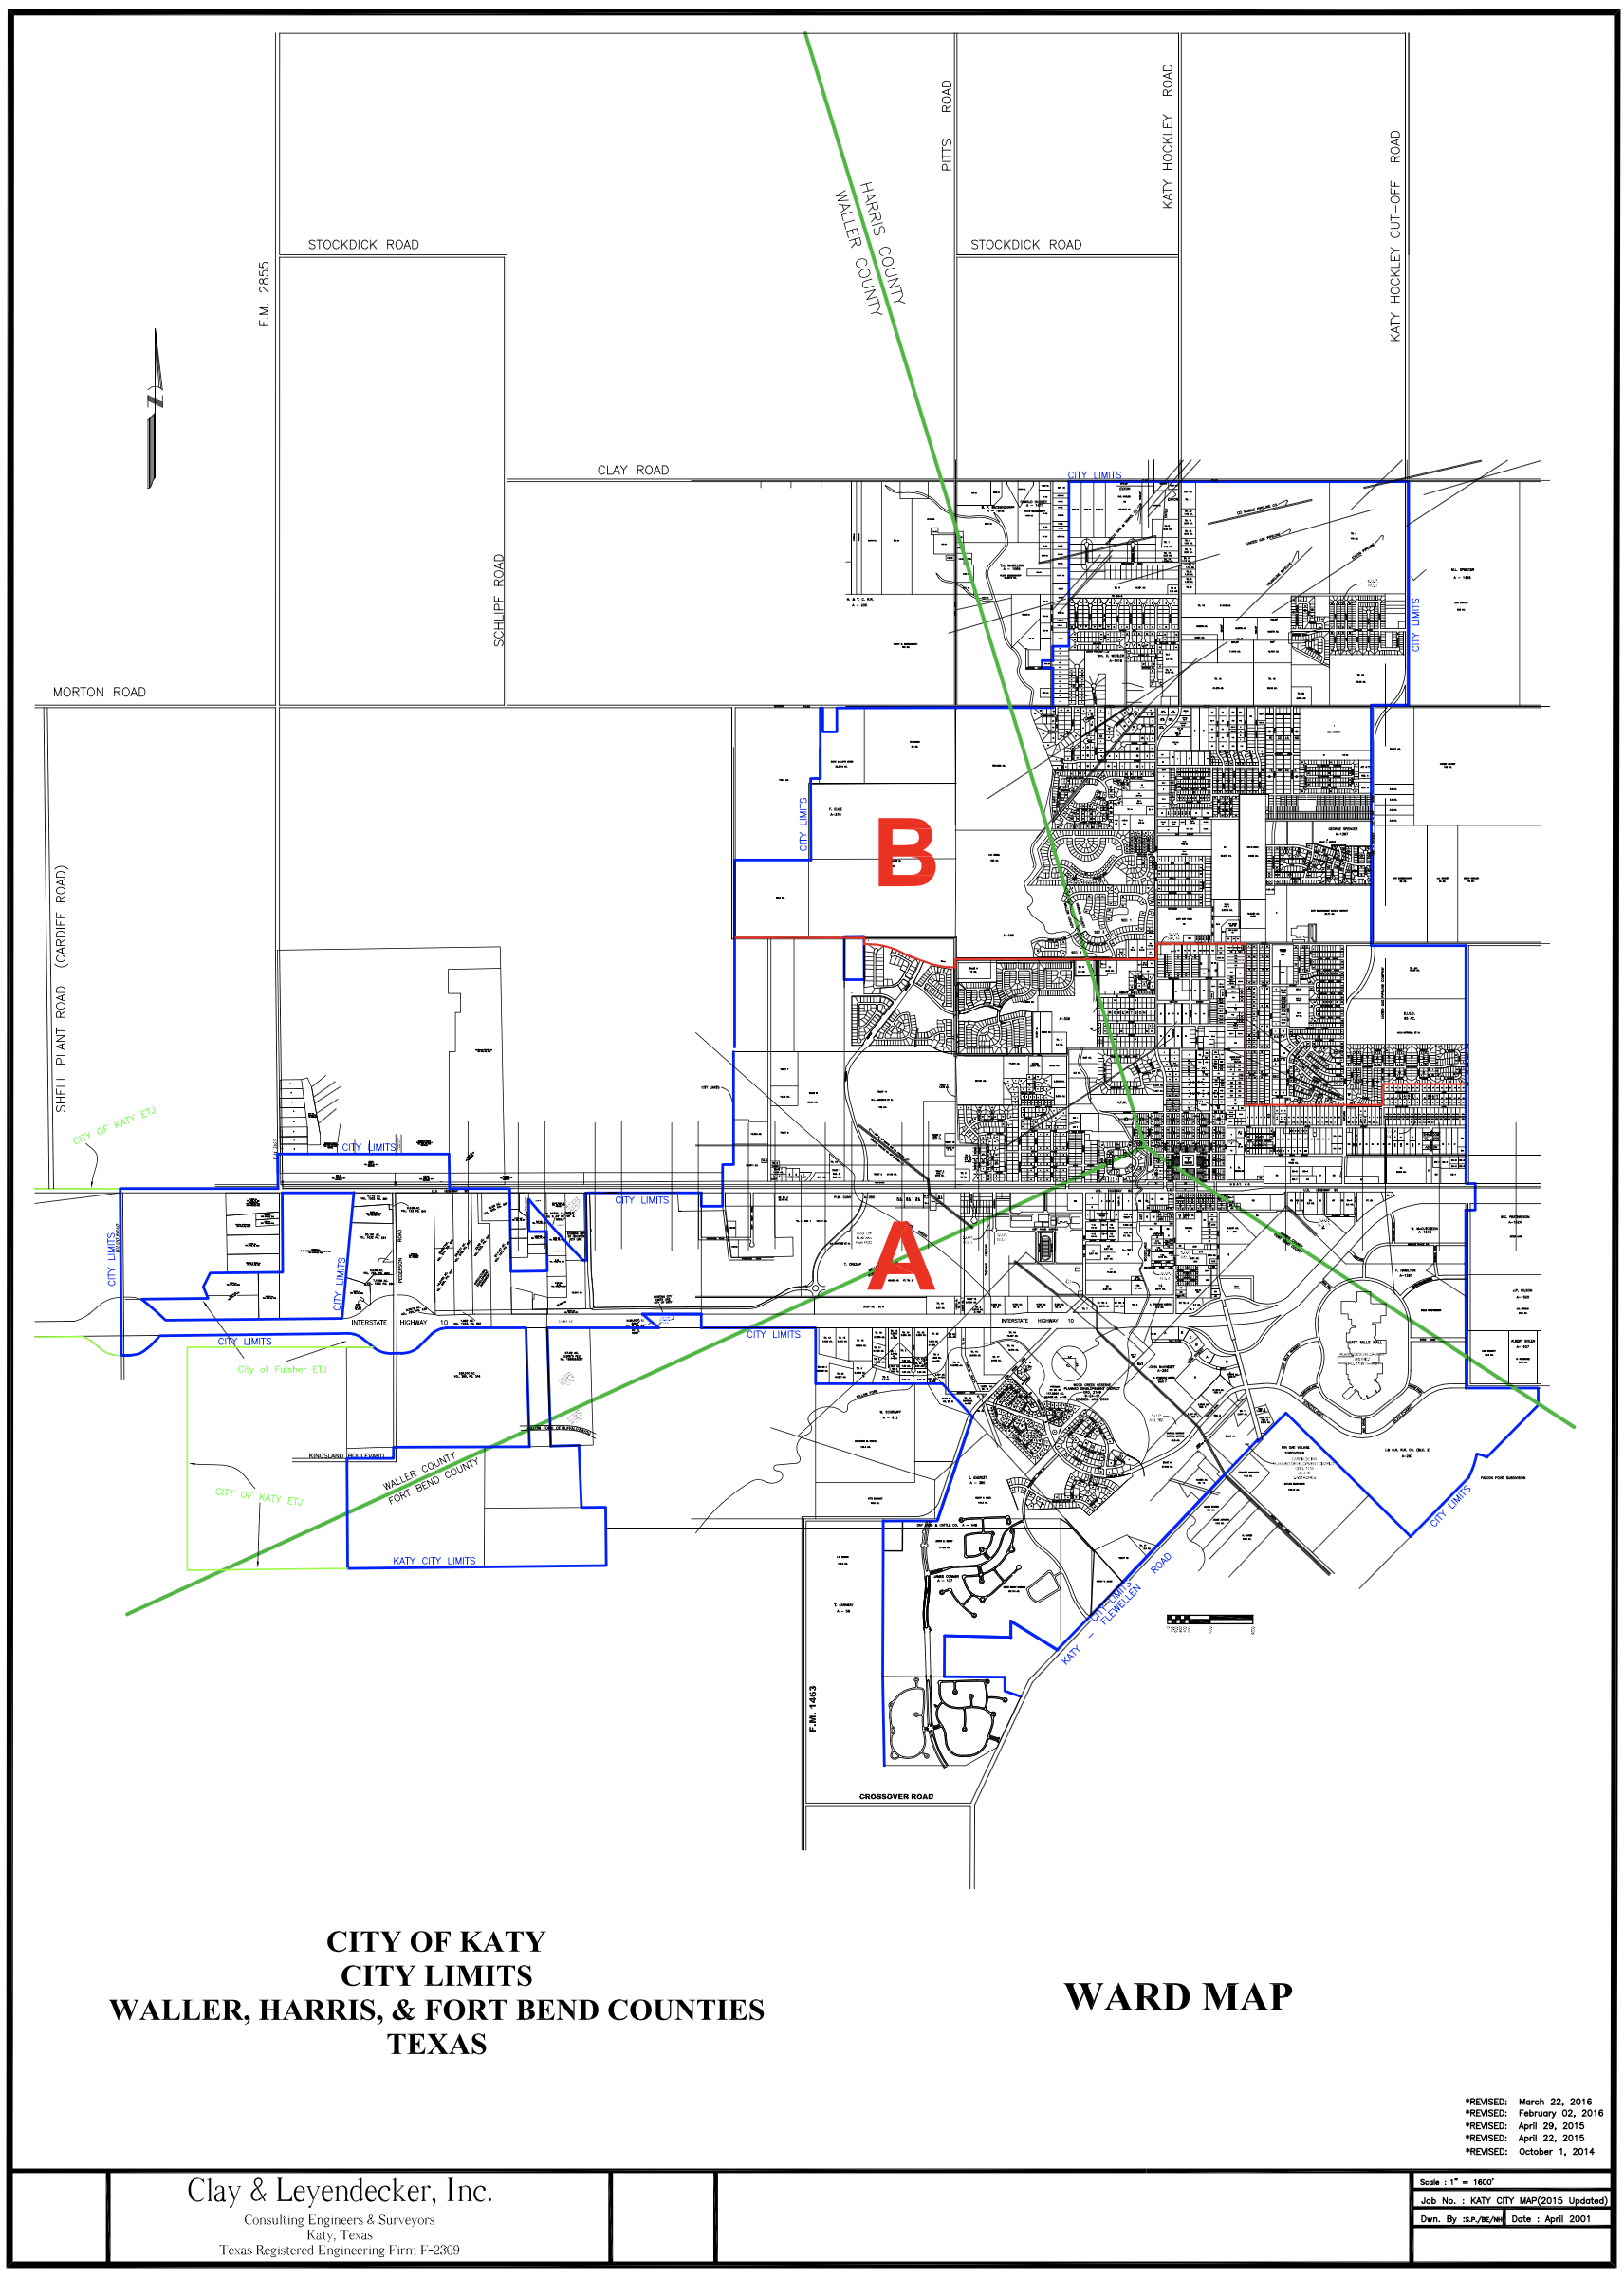 Katy Texas Map Ward Map | City of Katy, TX